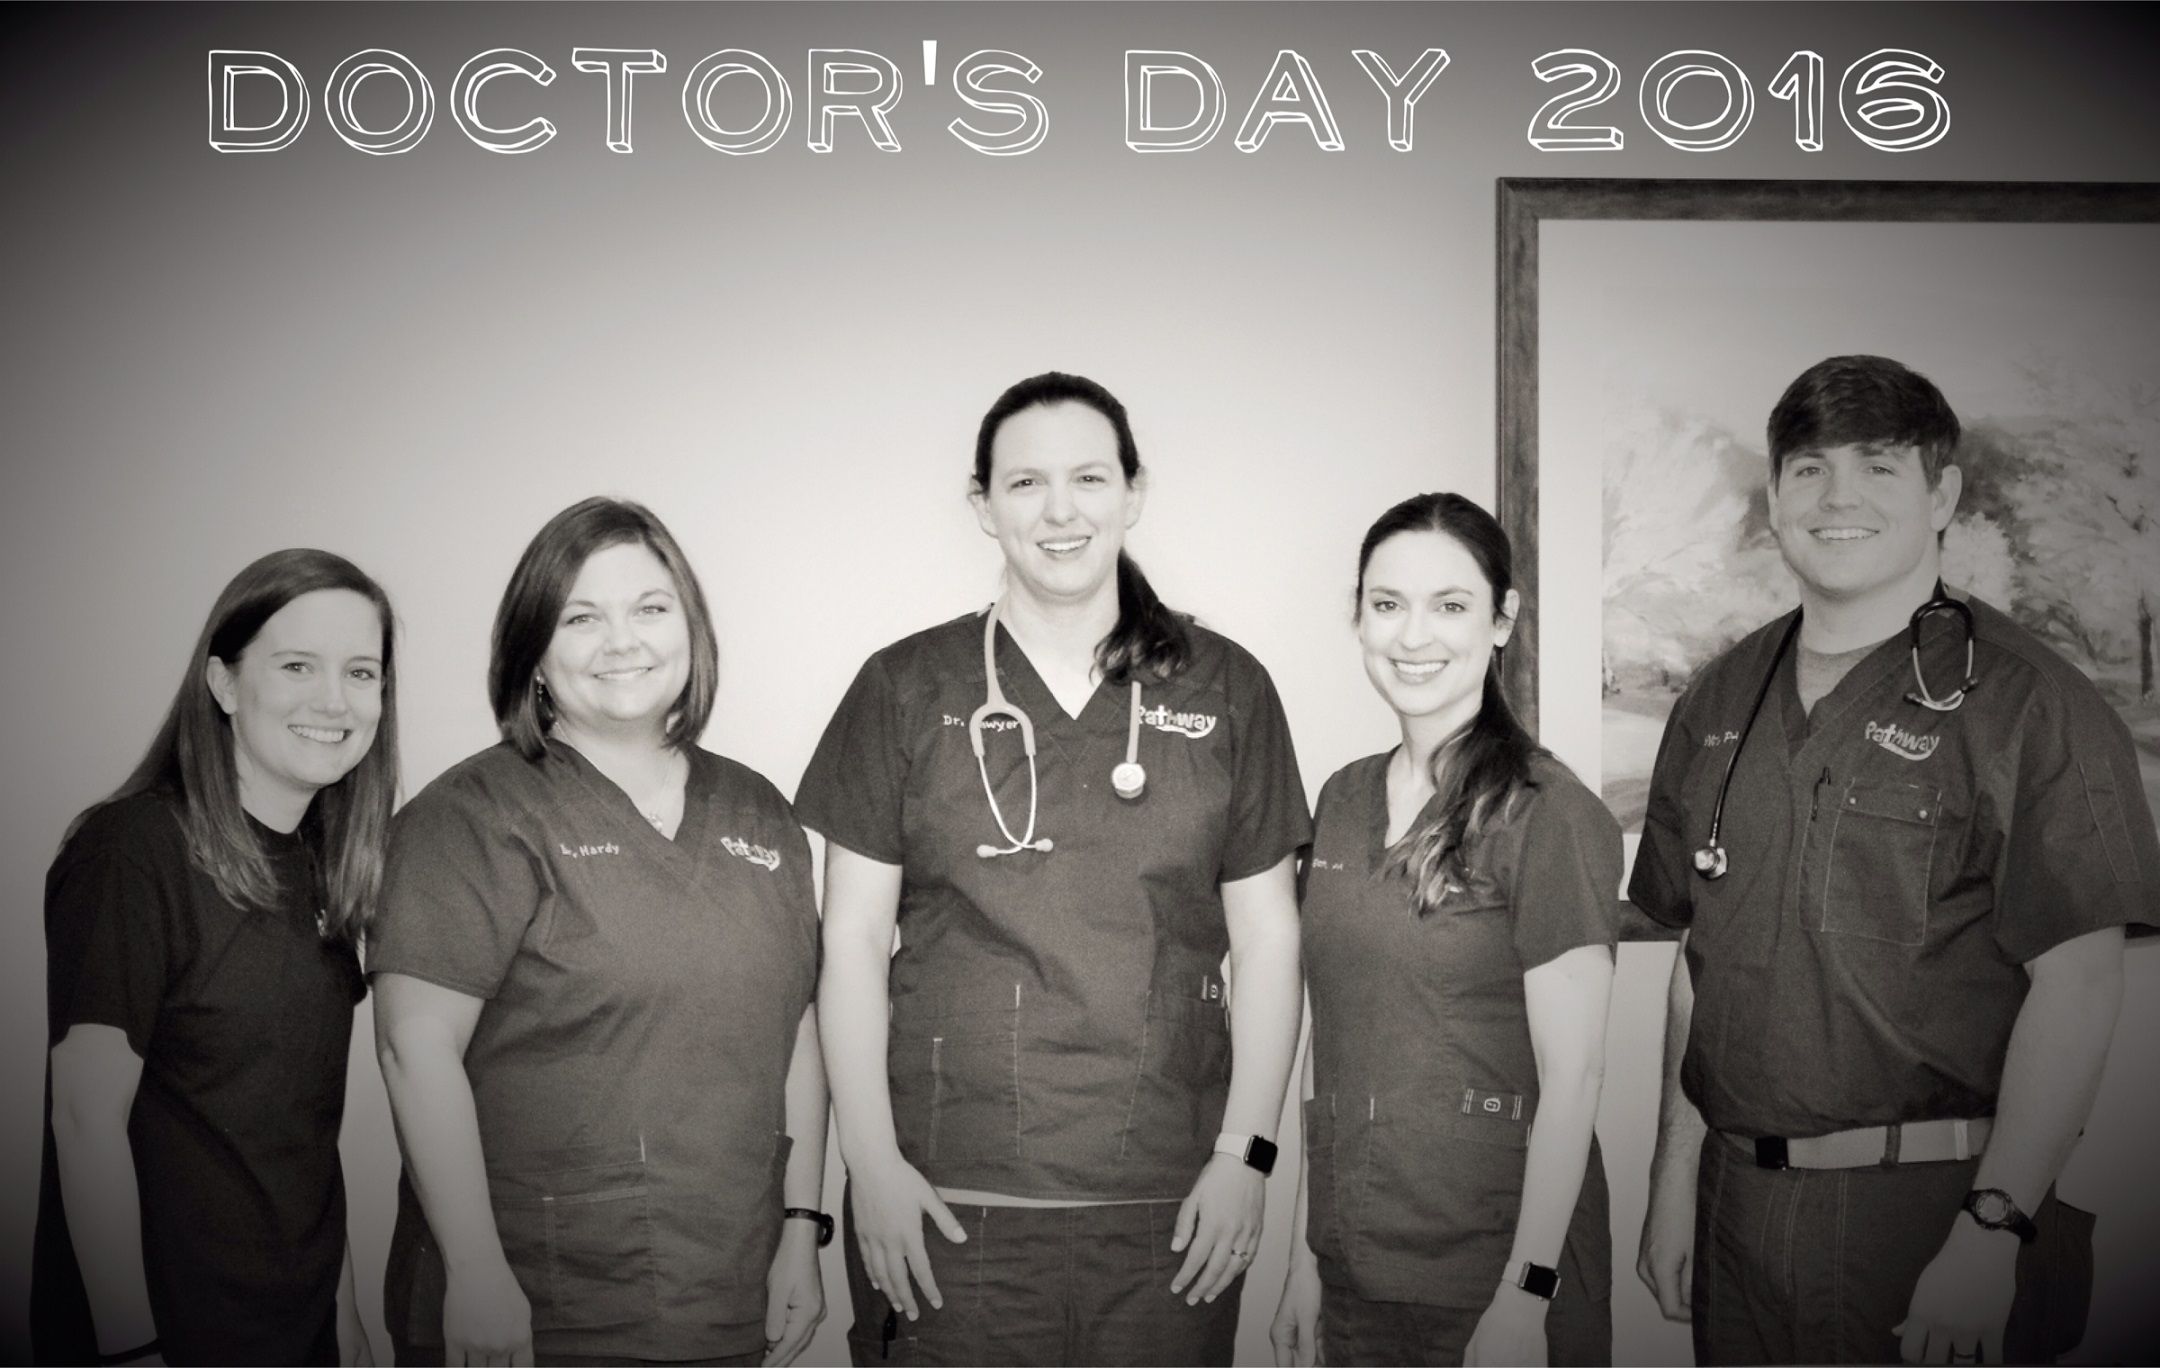 Happy Doctor's Day to our wonderful providers!